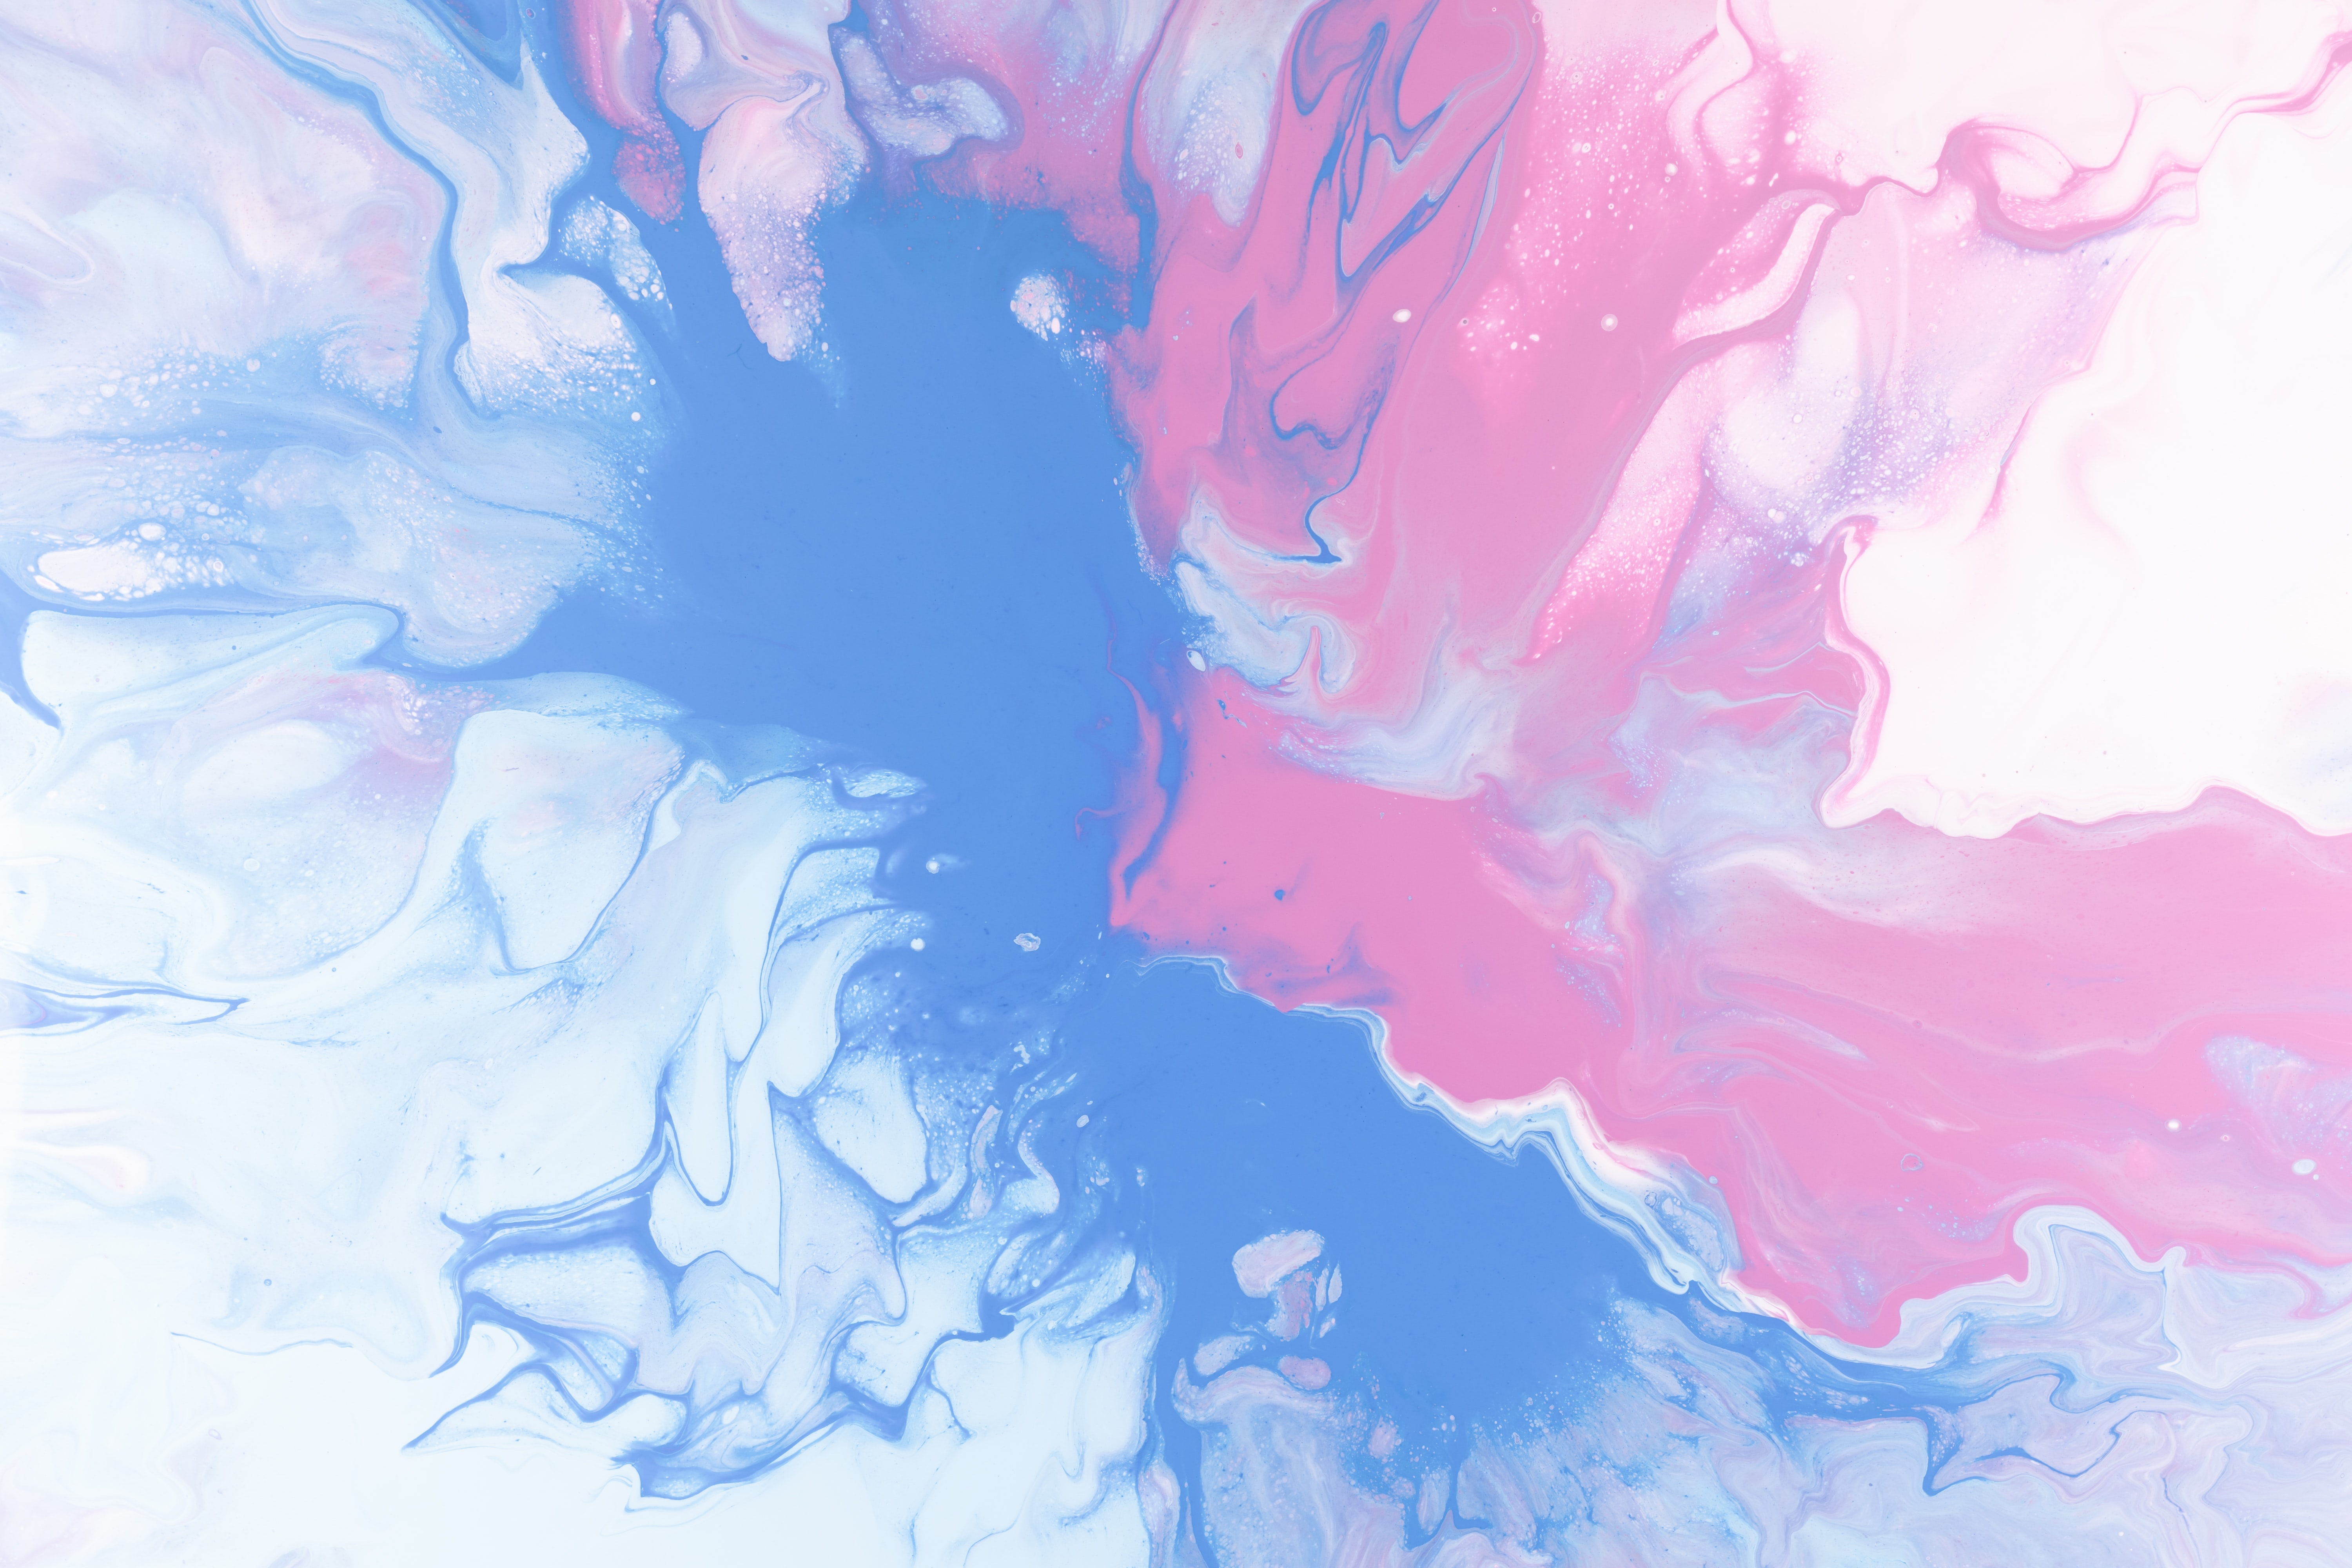 92304 download wallpaper Abstract, Paint, Liquid, Divorces, Faded screensavers and pictures for free